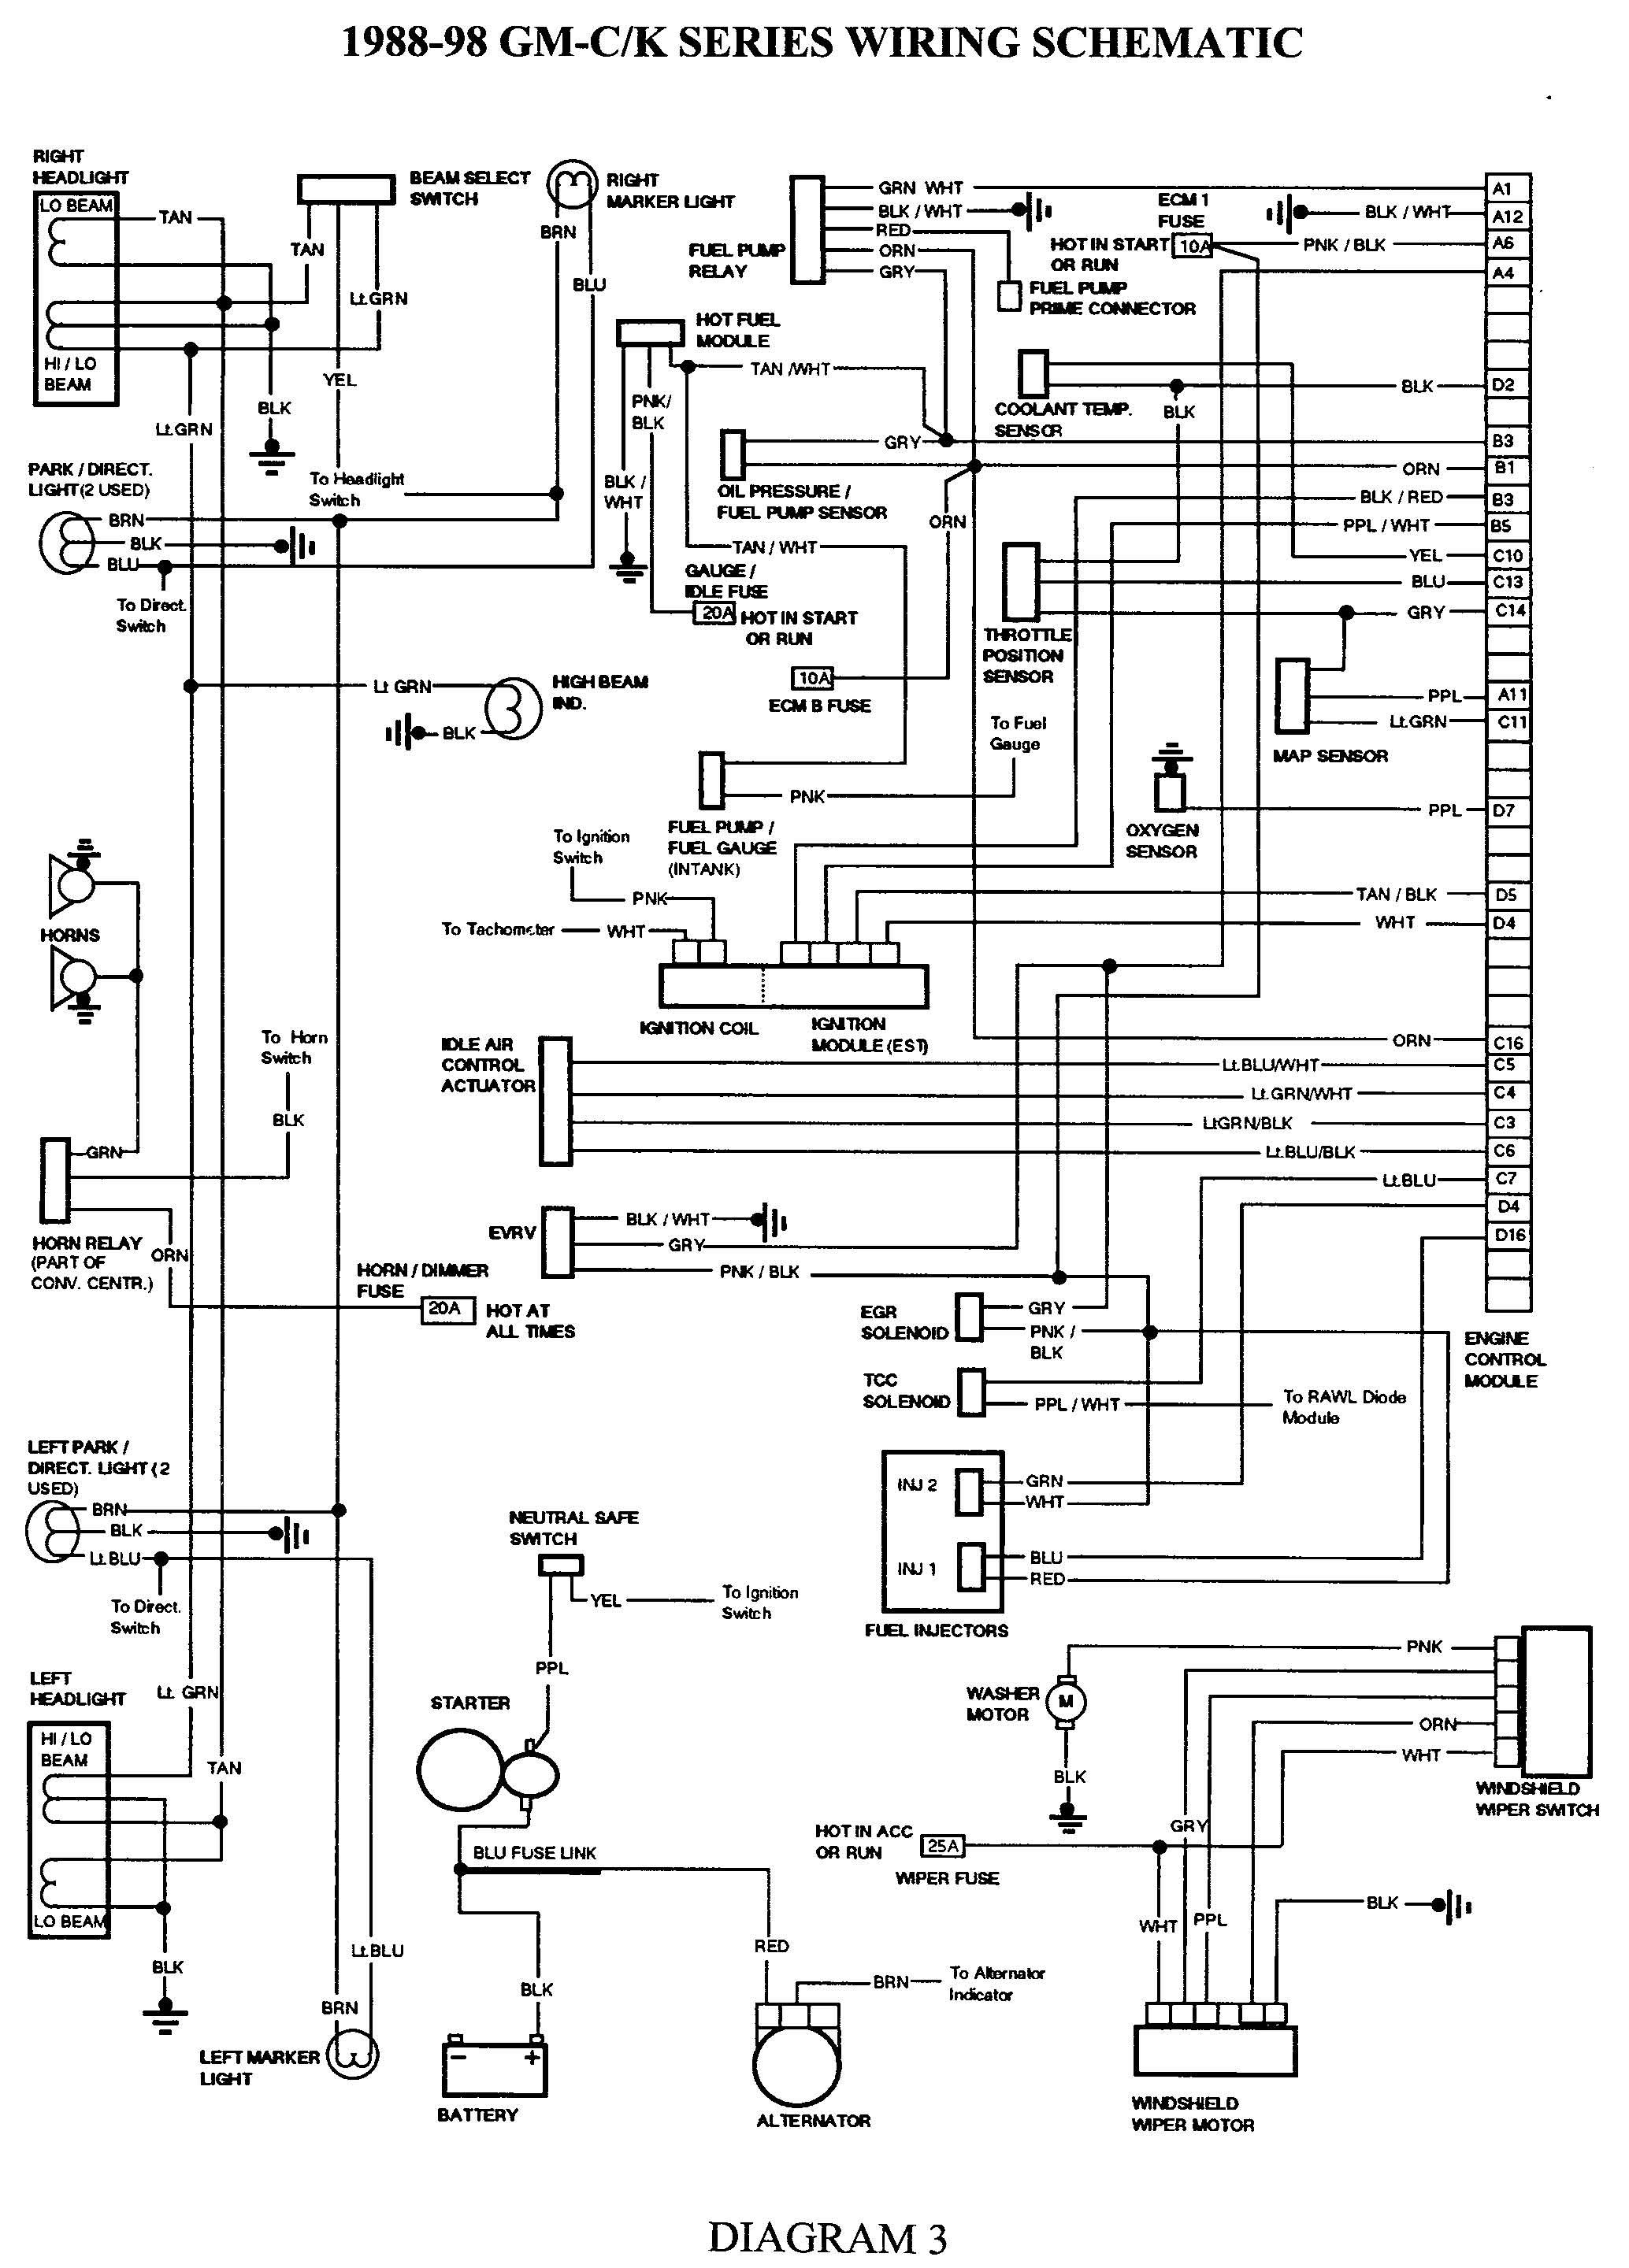 b2f2e5dbdc07dada83ef514f6d4ce3d4 gmc truck wiring diagrams on gm wiring harness diagram 88 98 kc chevy wiring diagrams trucks at edmiracle.co